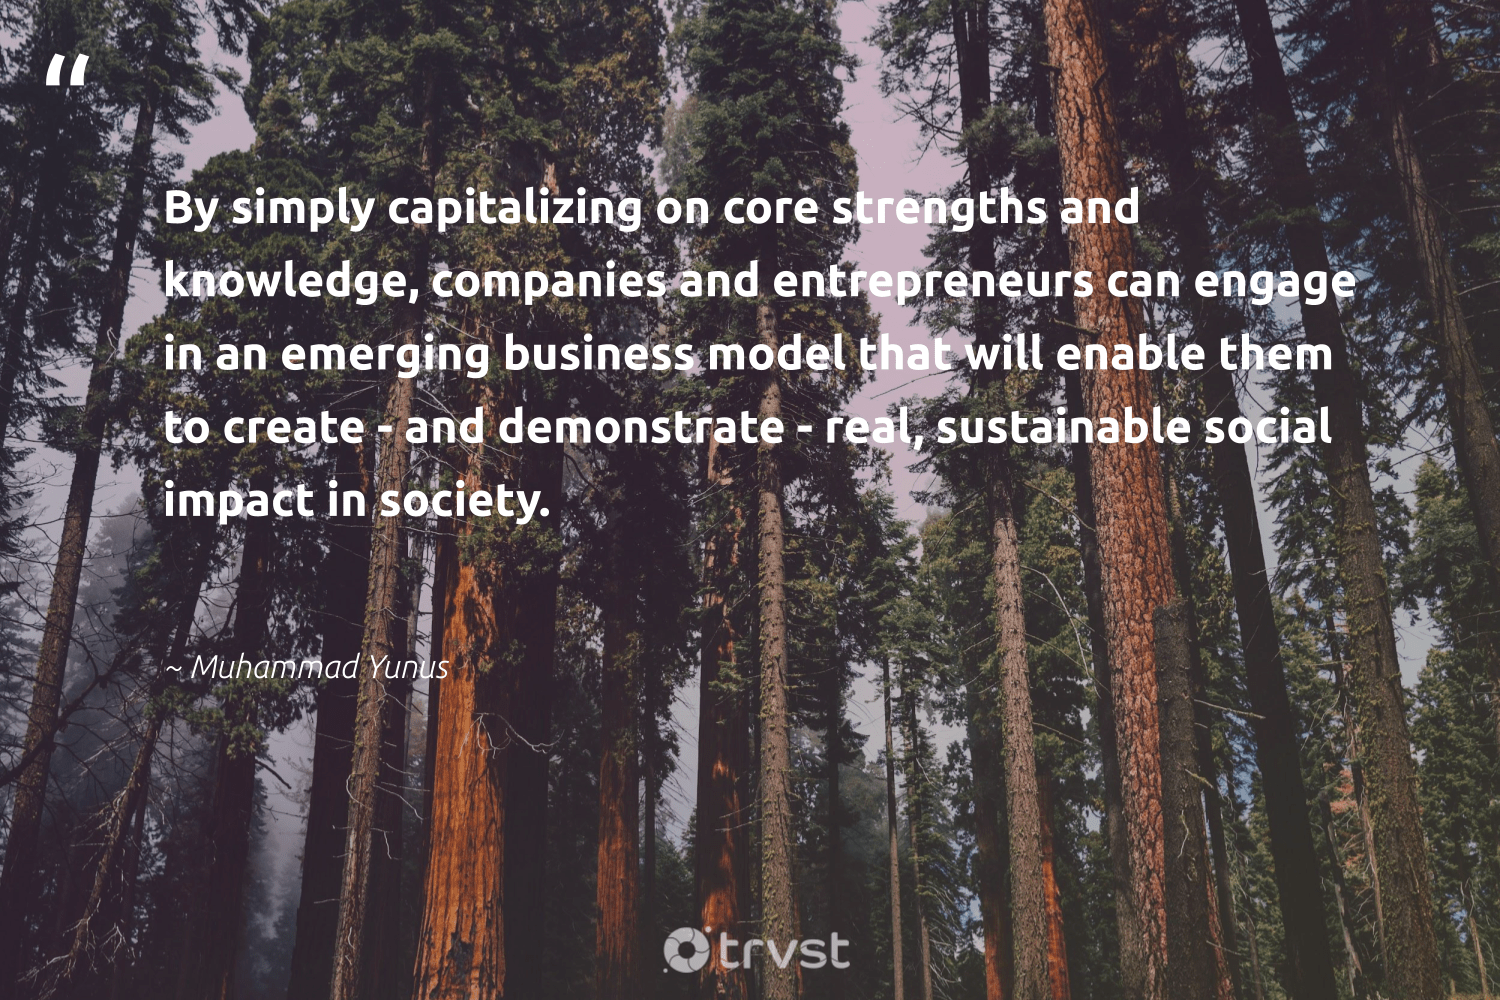 """By simply capitalizing on core strengths and knowledge, companies and entrepreneurs can engage in an emerging business model that will enable them to create - and demonstrate - real, sustainable social impact in society.""  - Muhammad Yunus #trvst #quotes #socialenterprise #impact #socialimpact #sustainable #society #socent #giveback #socialchange #ecoconscious #sociallyconscious"